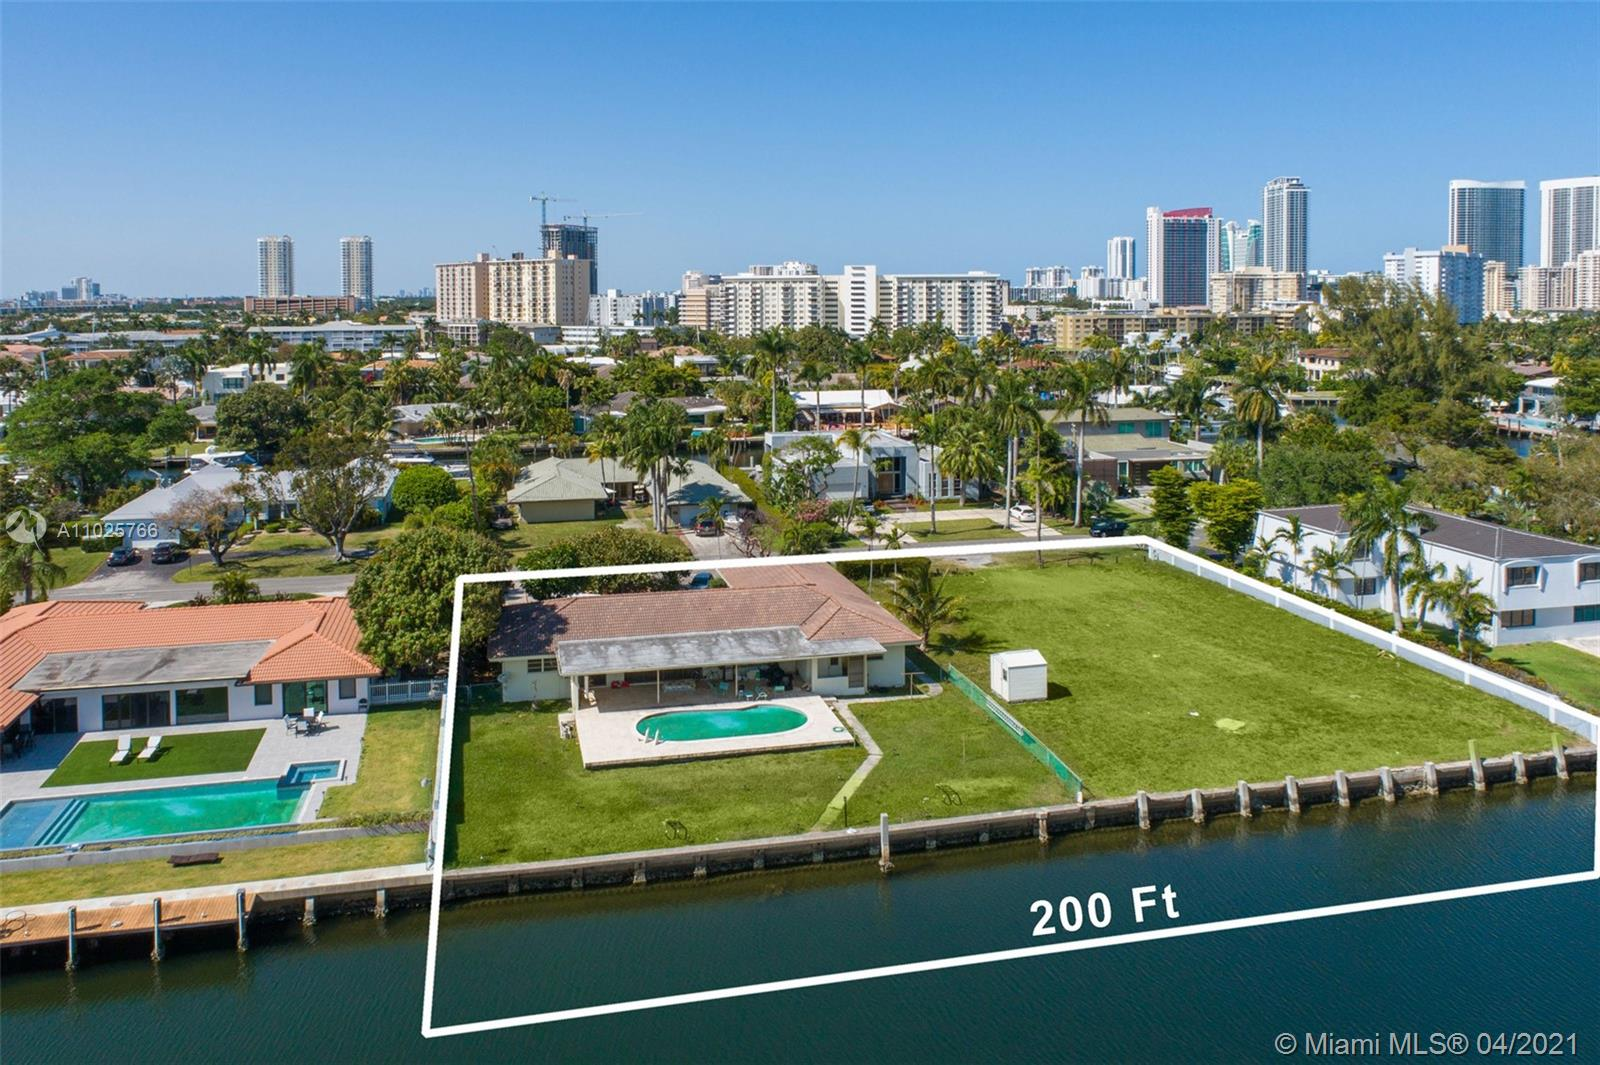 Impressive 200 Feet of Waterfront on deep-water canal with ocean access and no fixed bridges to ocean.  Perfect for large vessels offering 200 ft. of dockage.  One of a kind opportunity to own this amazing piece of property.  Located in the gated Golden Isles waterfront community centrally located between Miami and Ft. Lauderdale.  Being sold combined with adjacent property to the east side for a total of 30,000 sq.ft. of land.